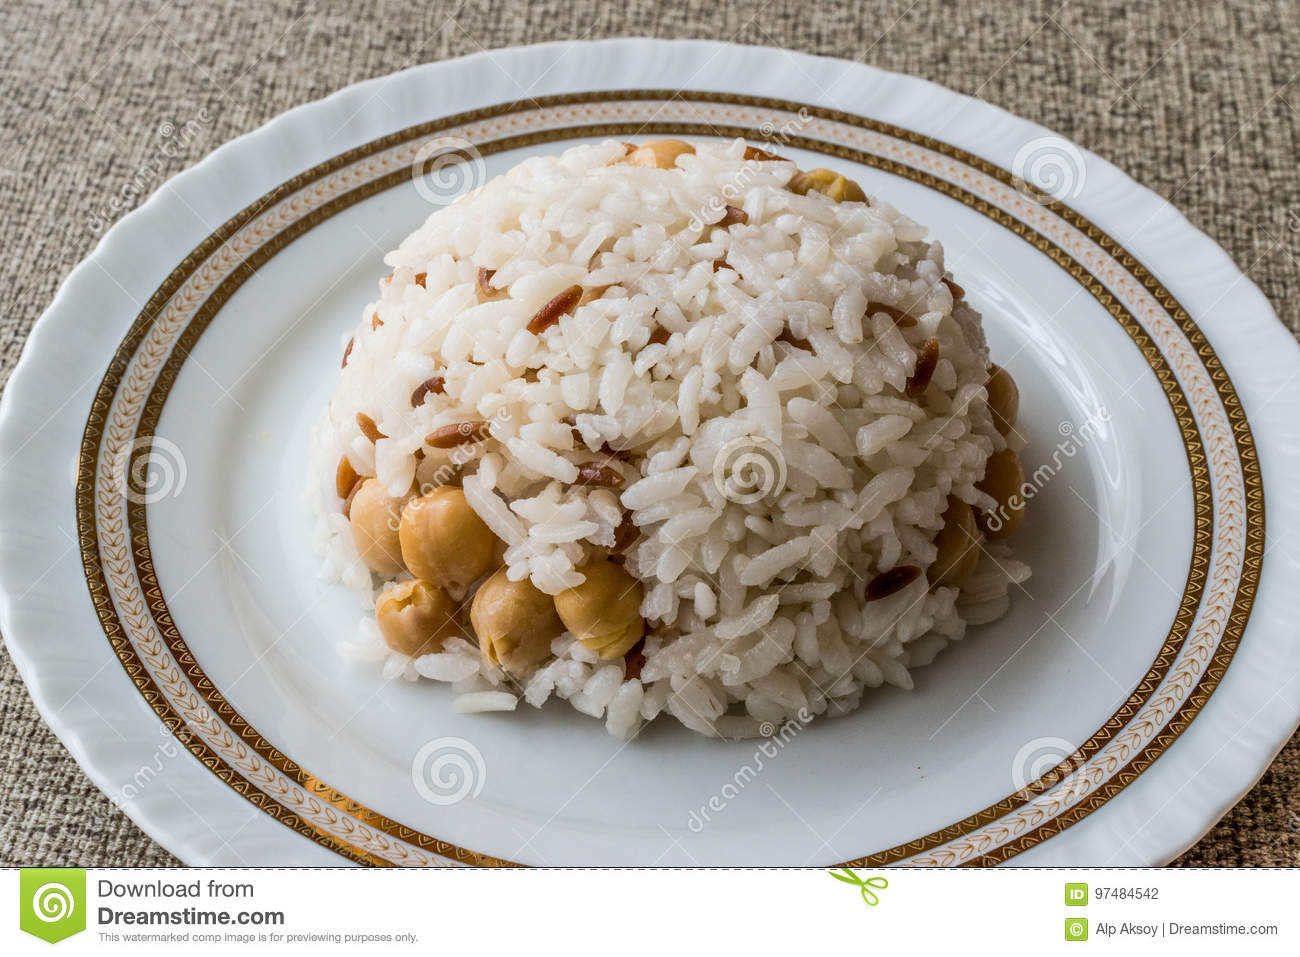 Turkish Rice with chickpea served with salt and pepper / Nohut Pilav. Dinner plate. & Turkish Rice With Chickpea Served With Salt And Pepper / Nohut Pilav ...